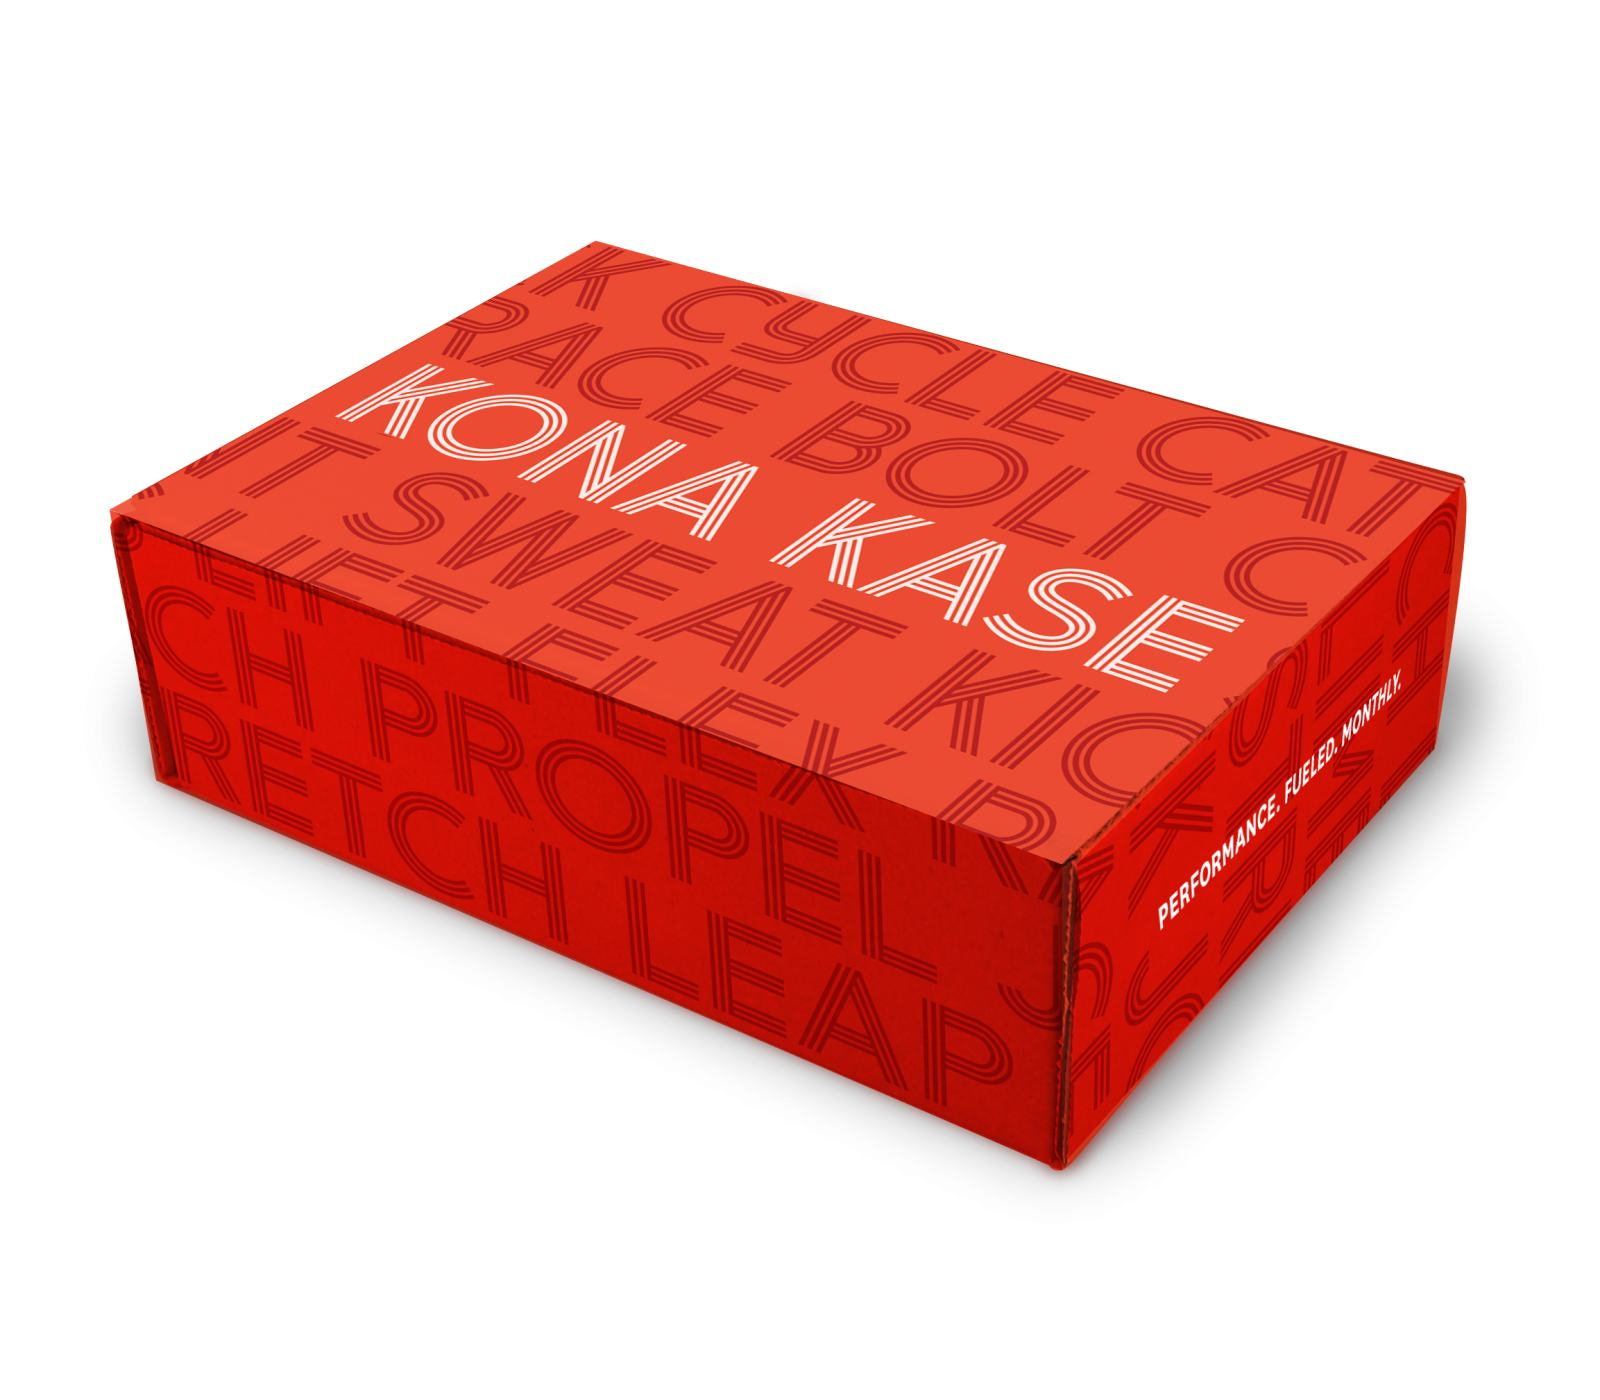 Kona muscle packagingmockup1 wh01 copy 1 copy